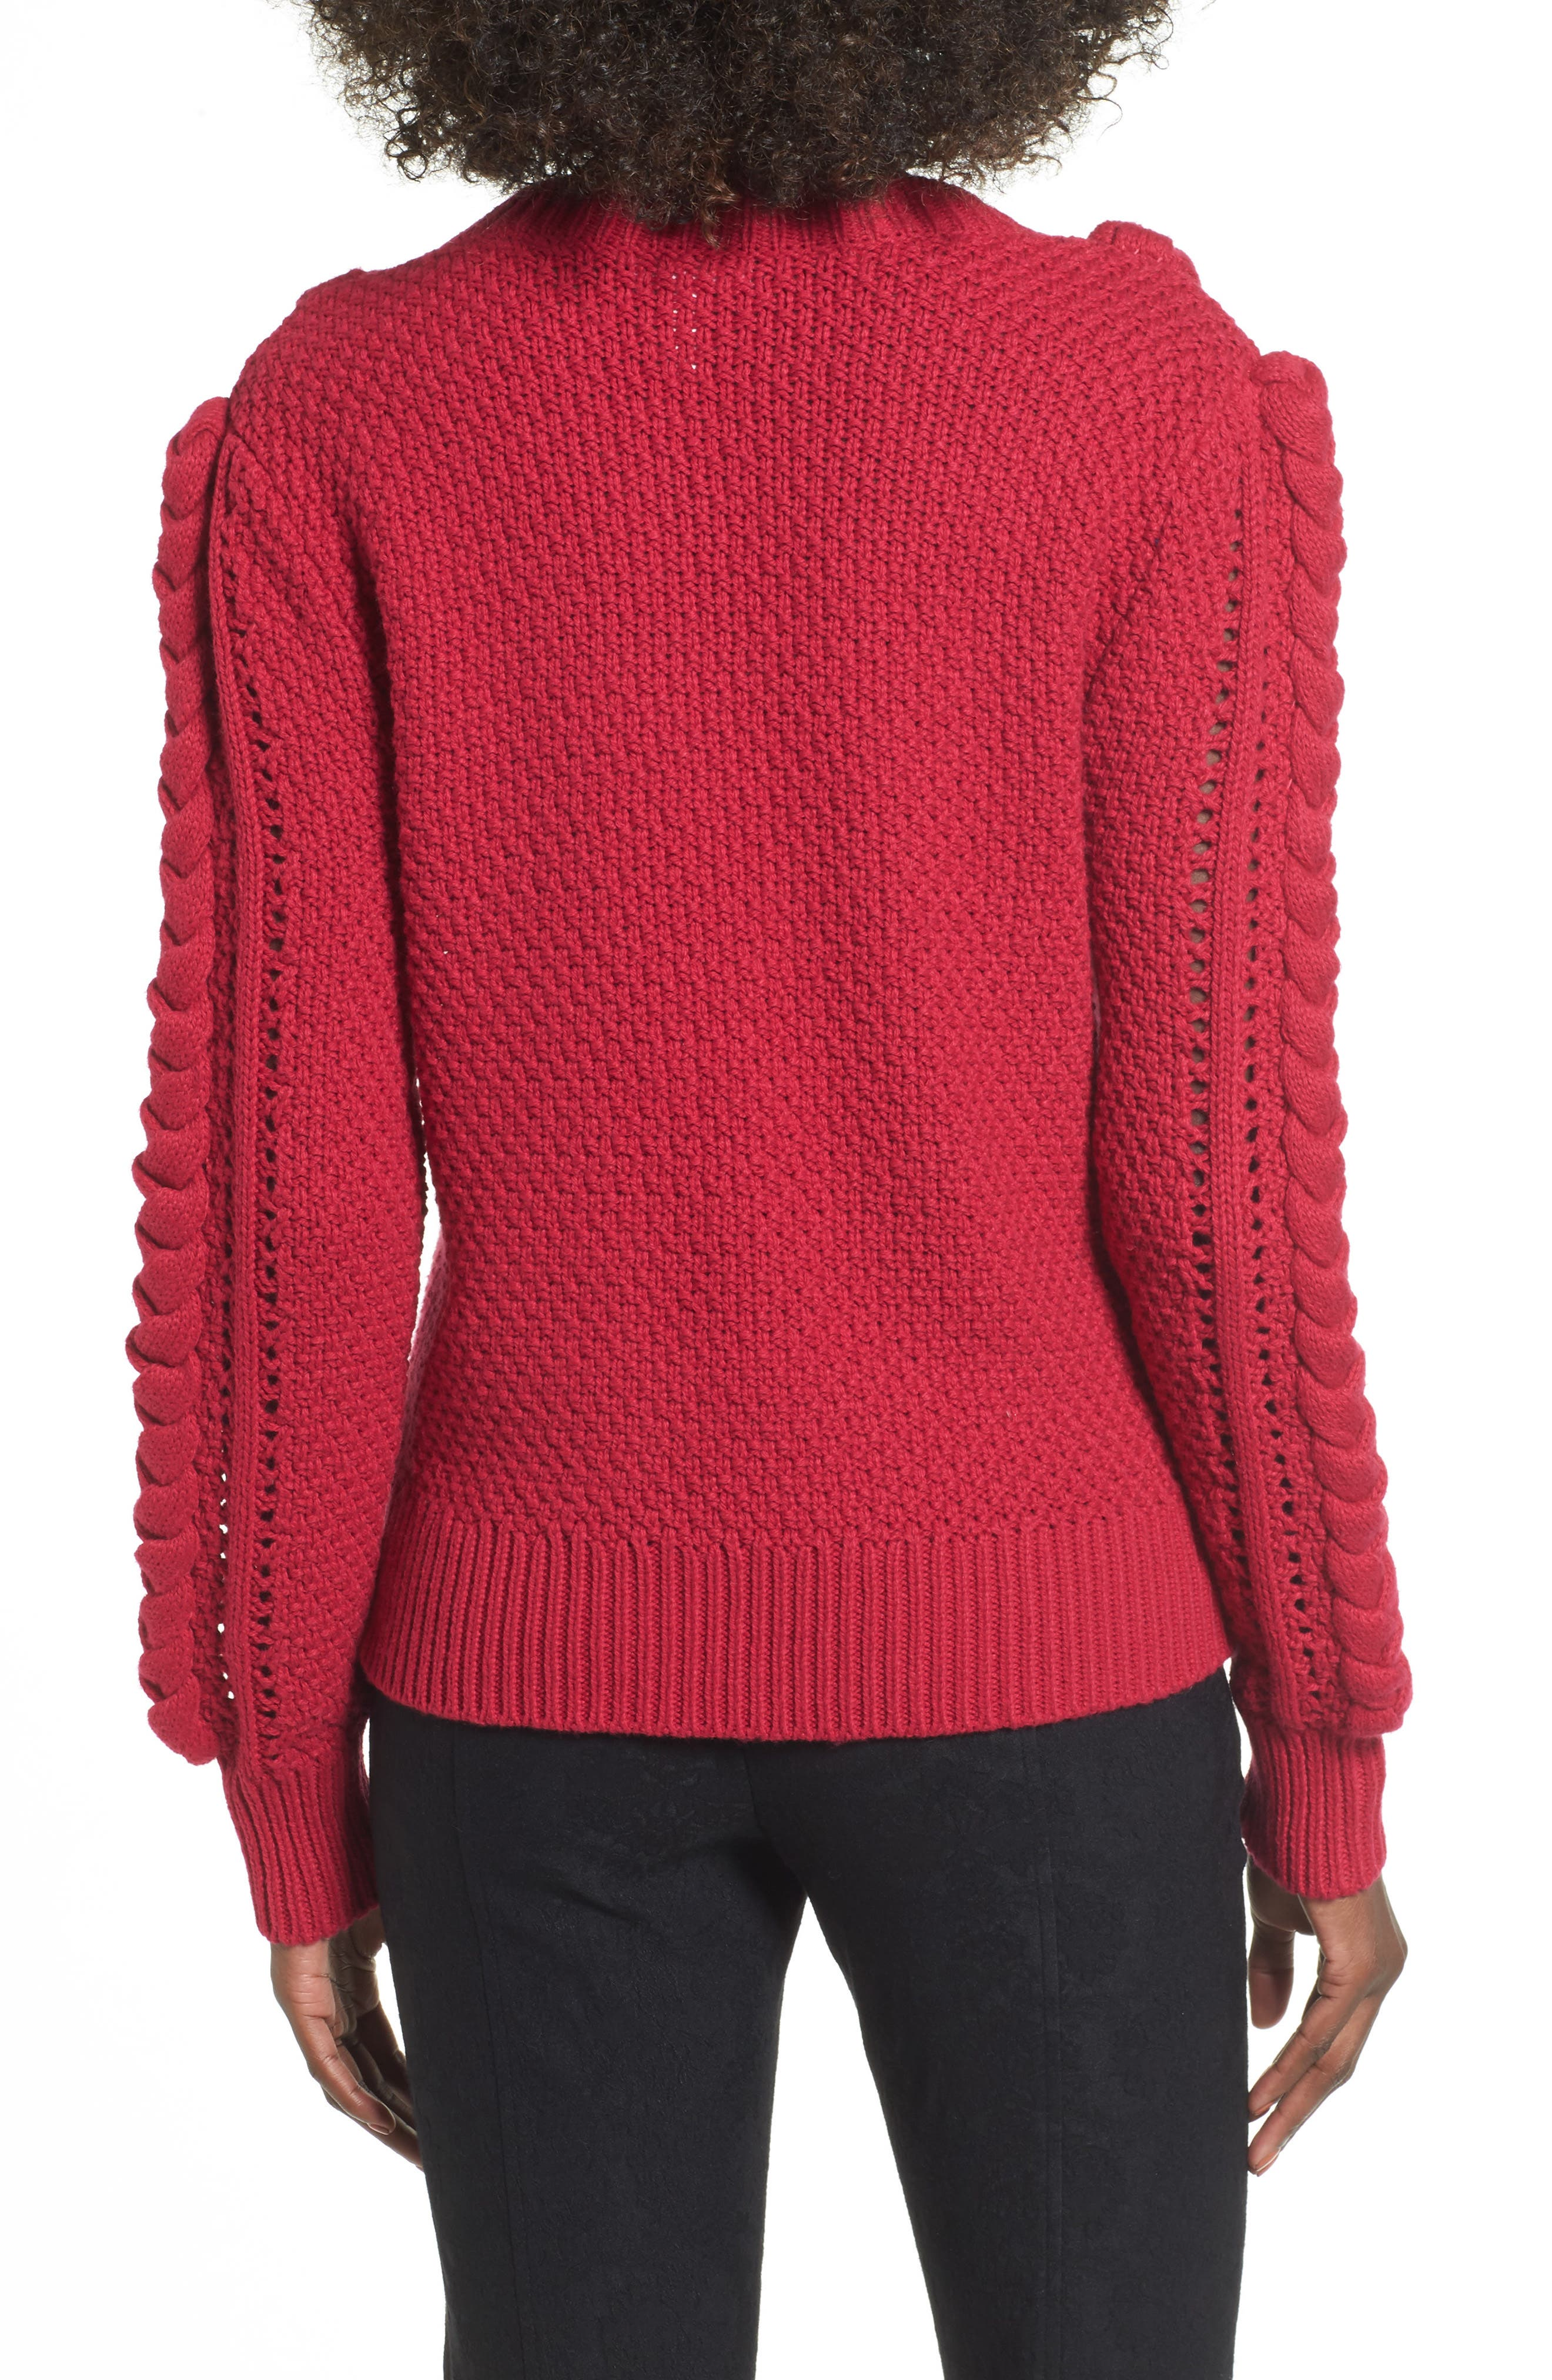 Power Cable Sweater,                             Alternate thumbnail 2, color,                             Red Cerise